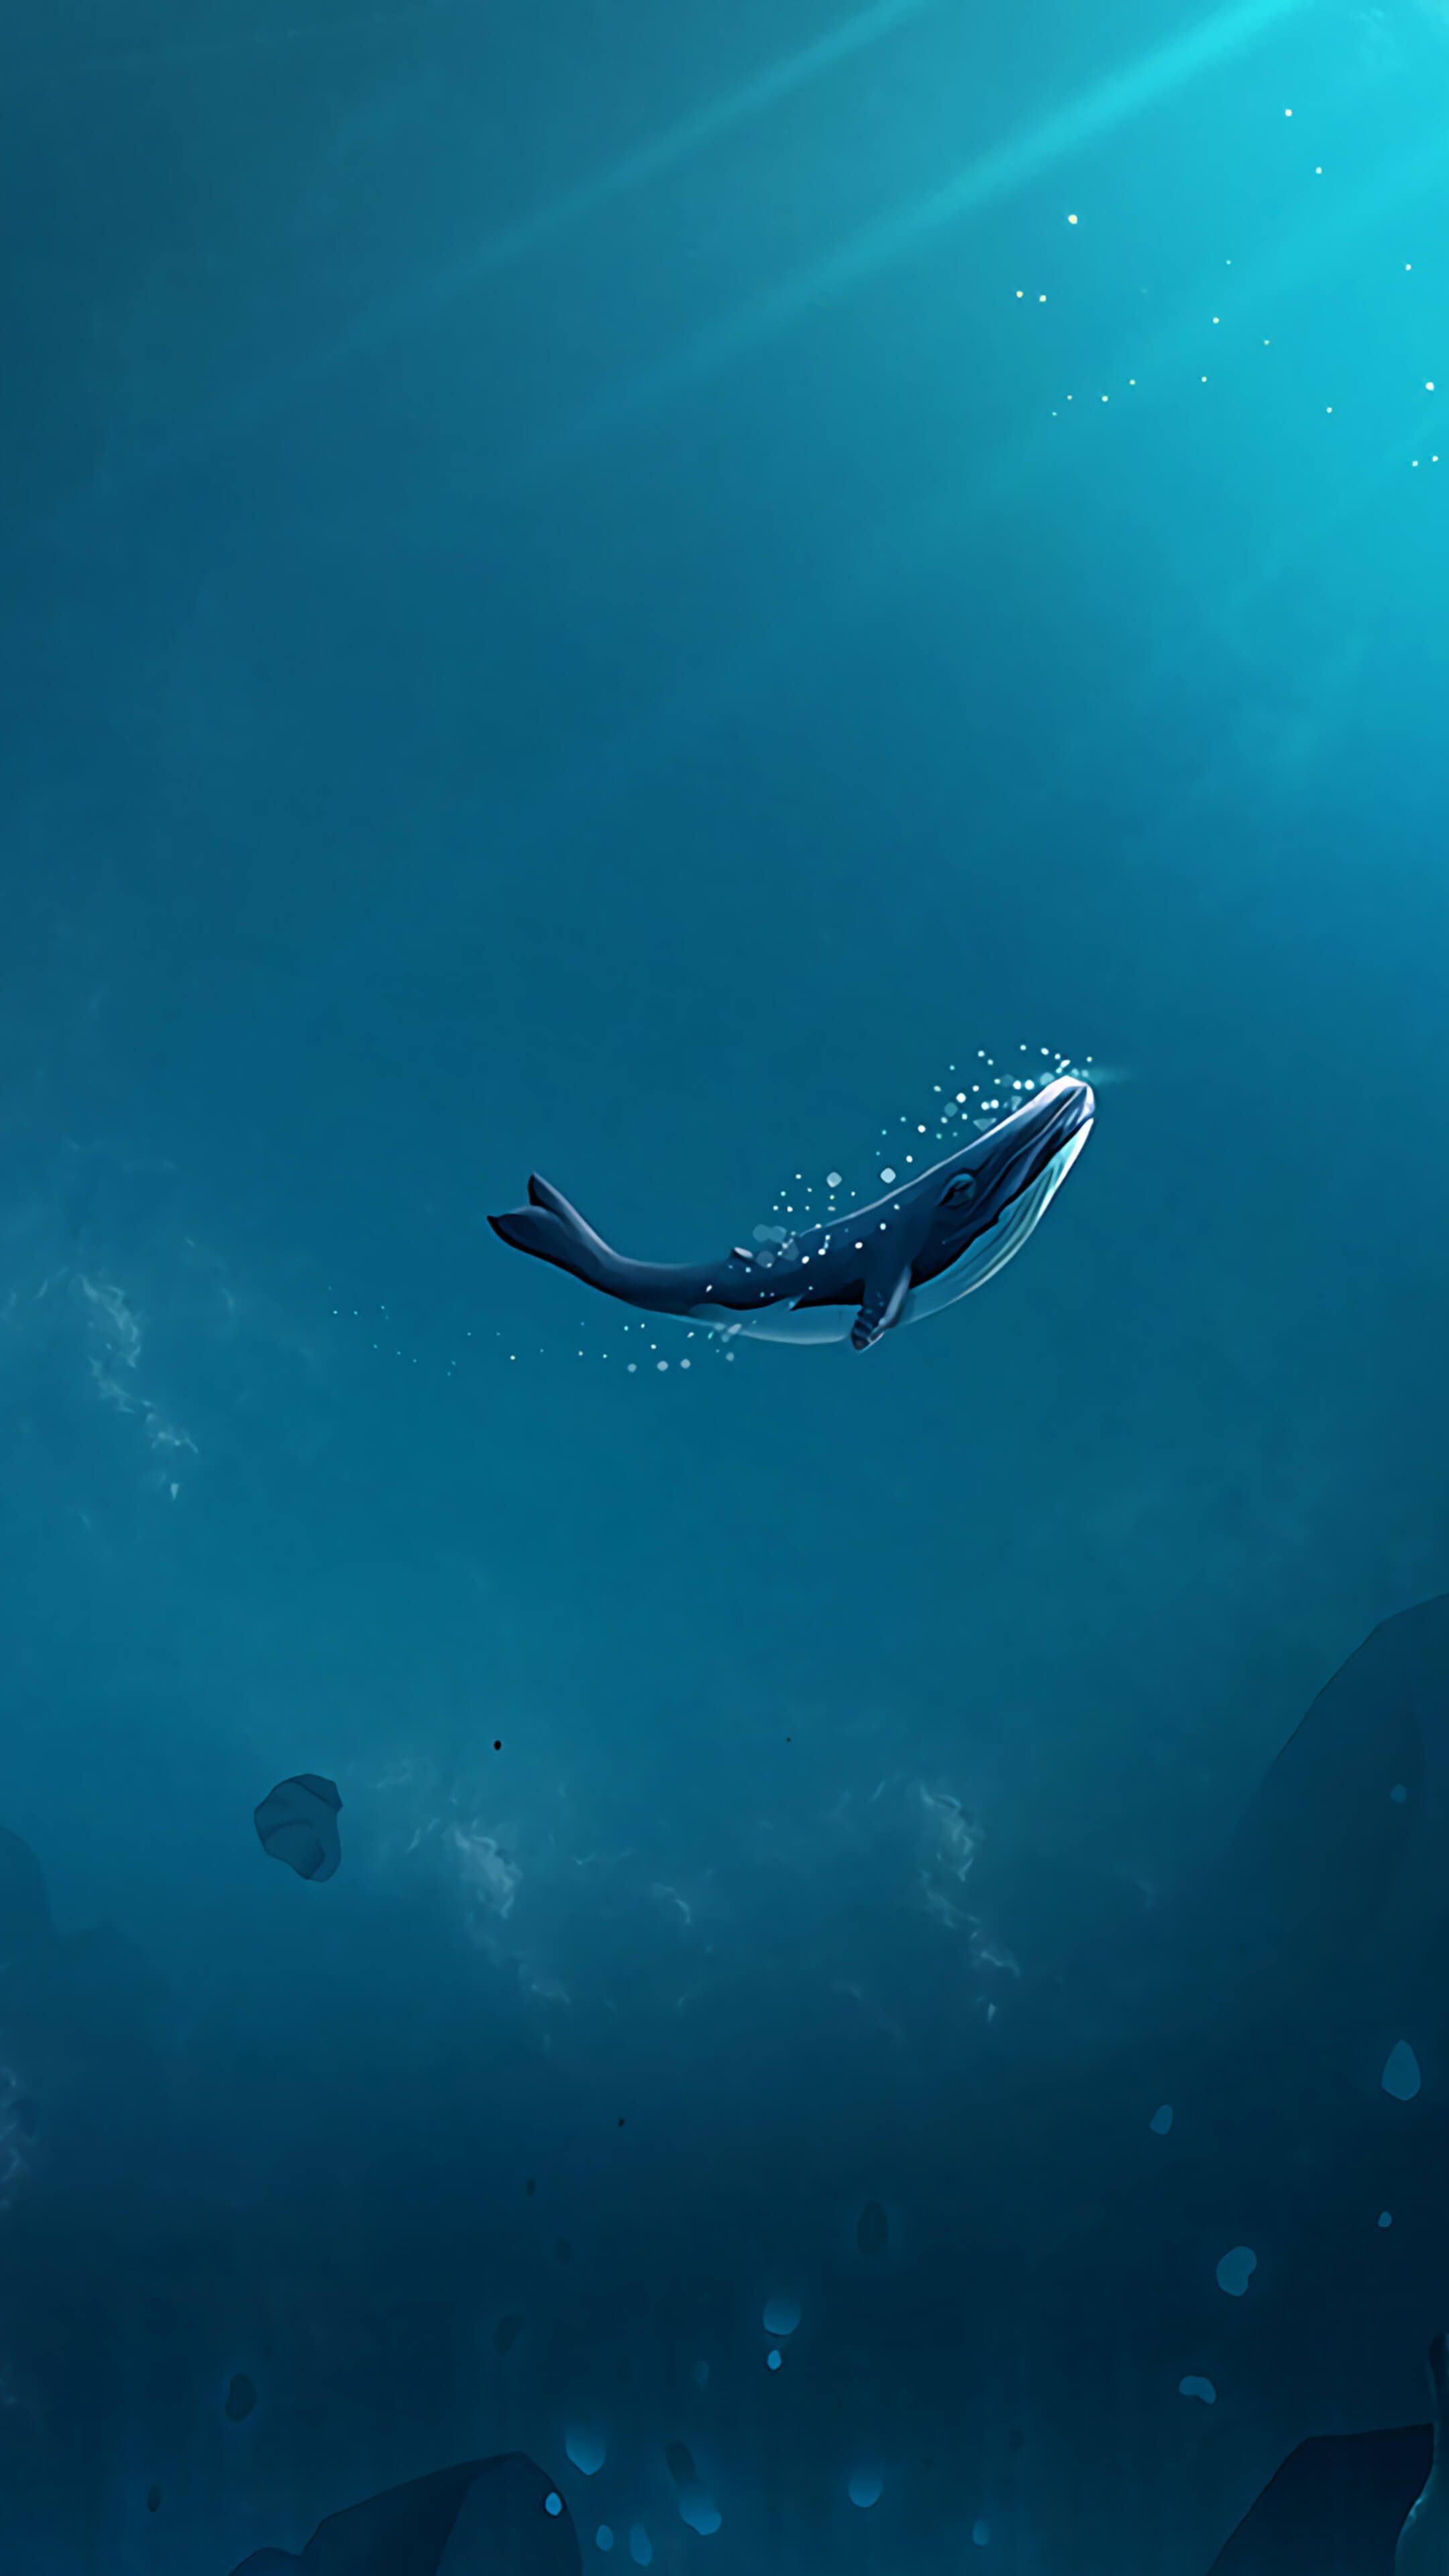 Blue Whale Wallpapers Top Free Blue Whale Backgrounds Wallpaperaccess